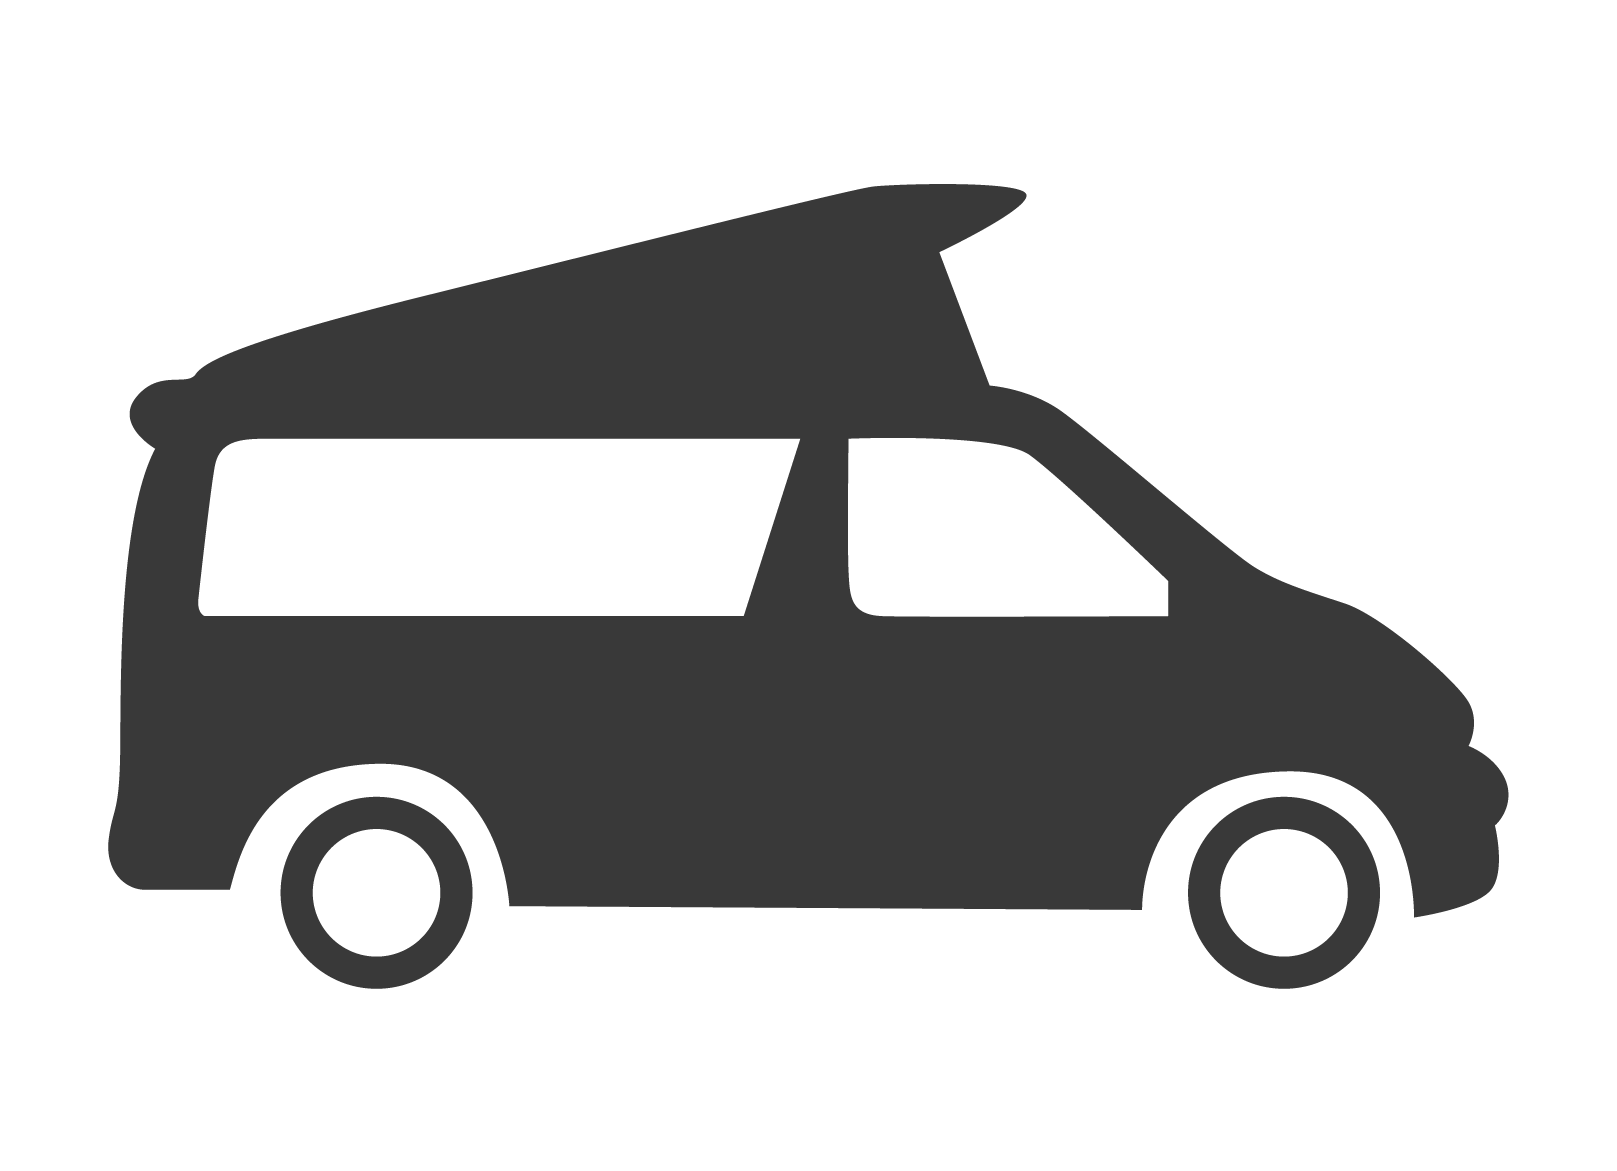 Tourist clipart service vehicle. Welcome to hic insurance